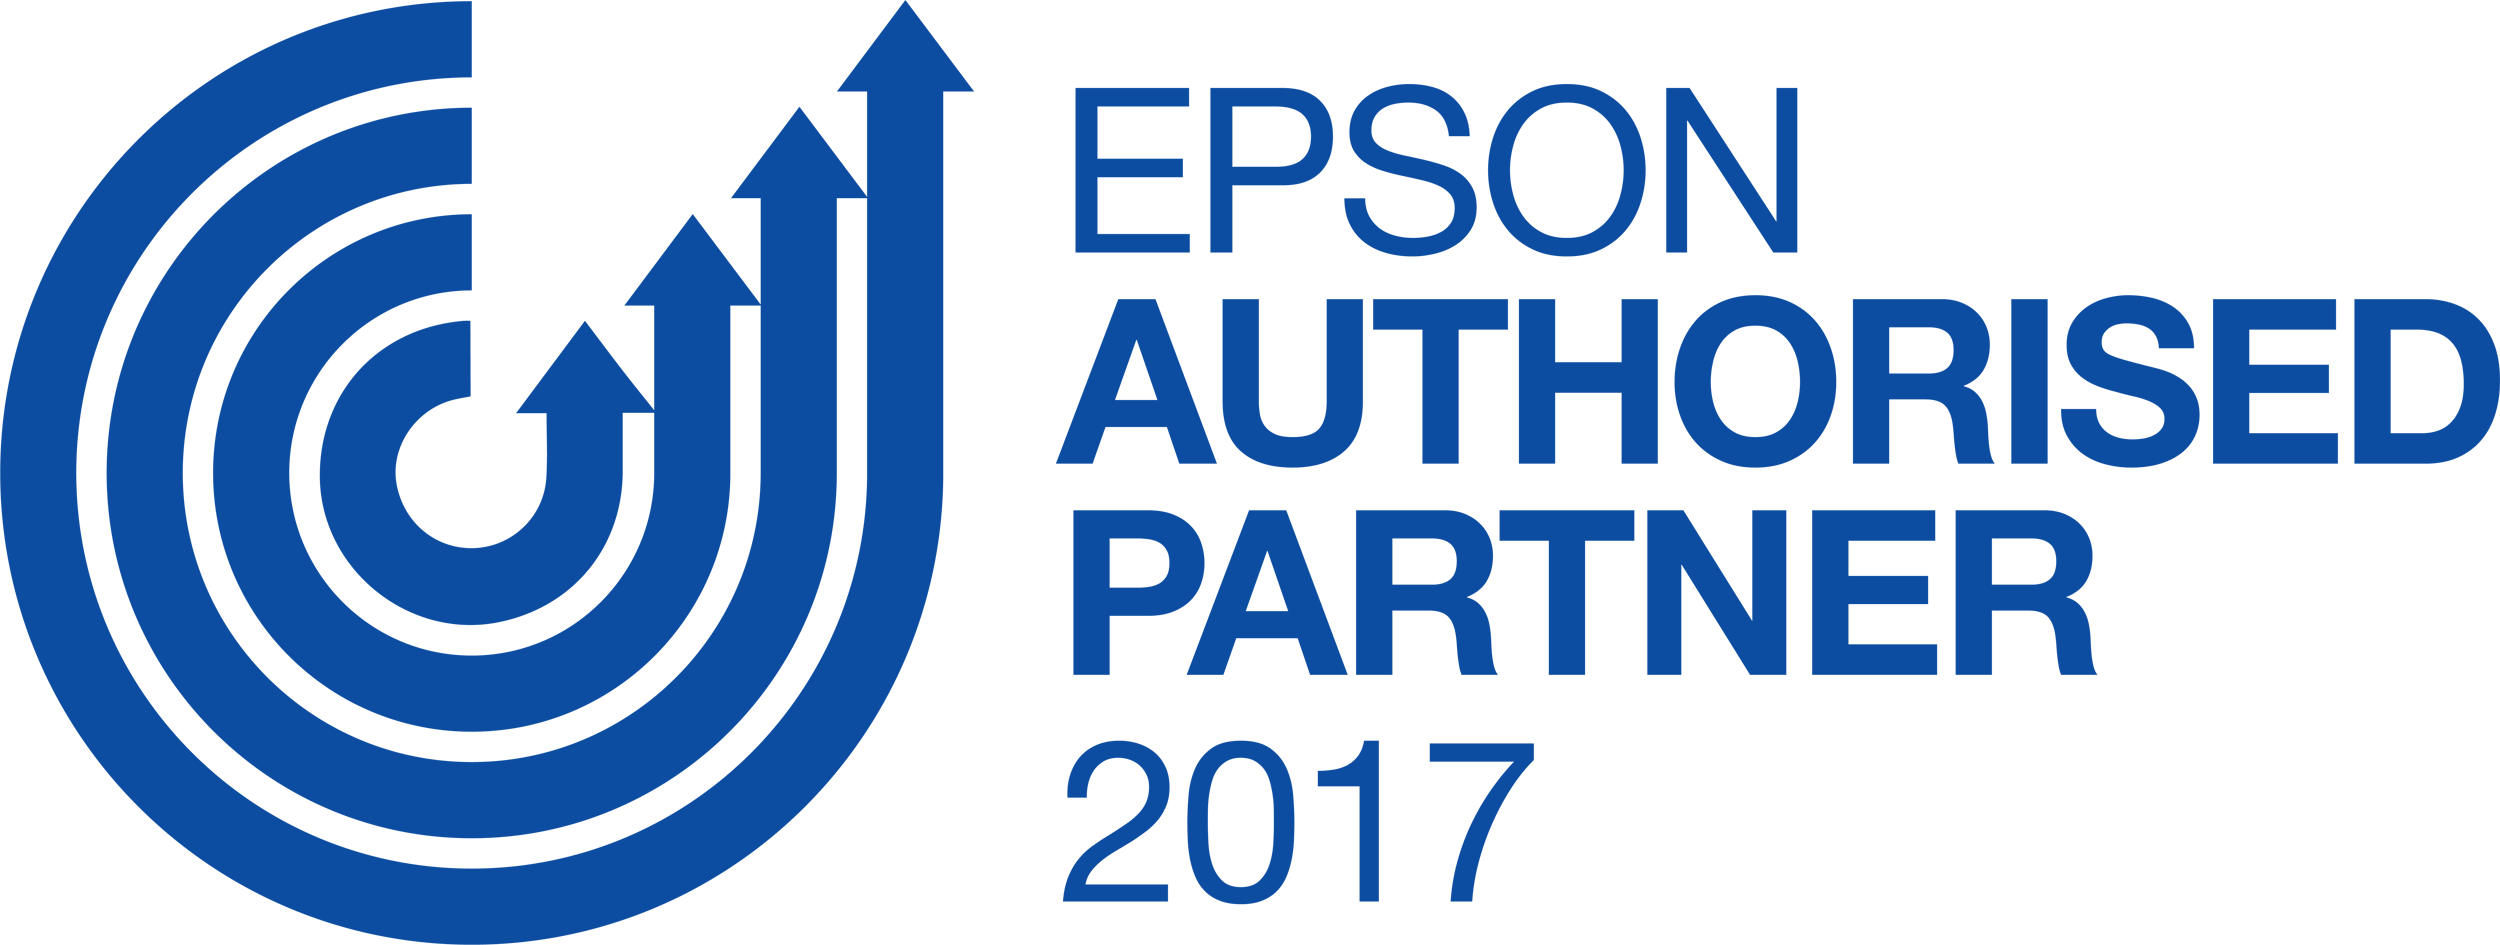 Epson_Authorised_Partner_2017_Logo_BlueOnWhite